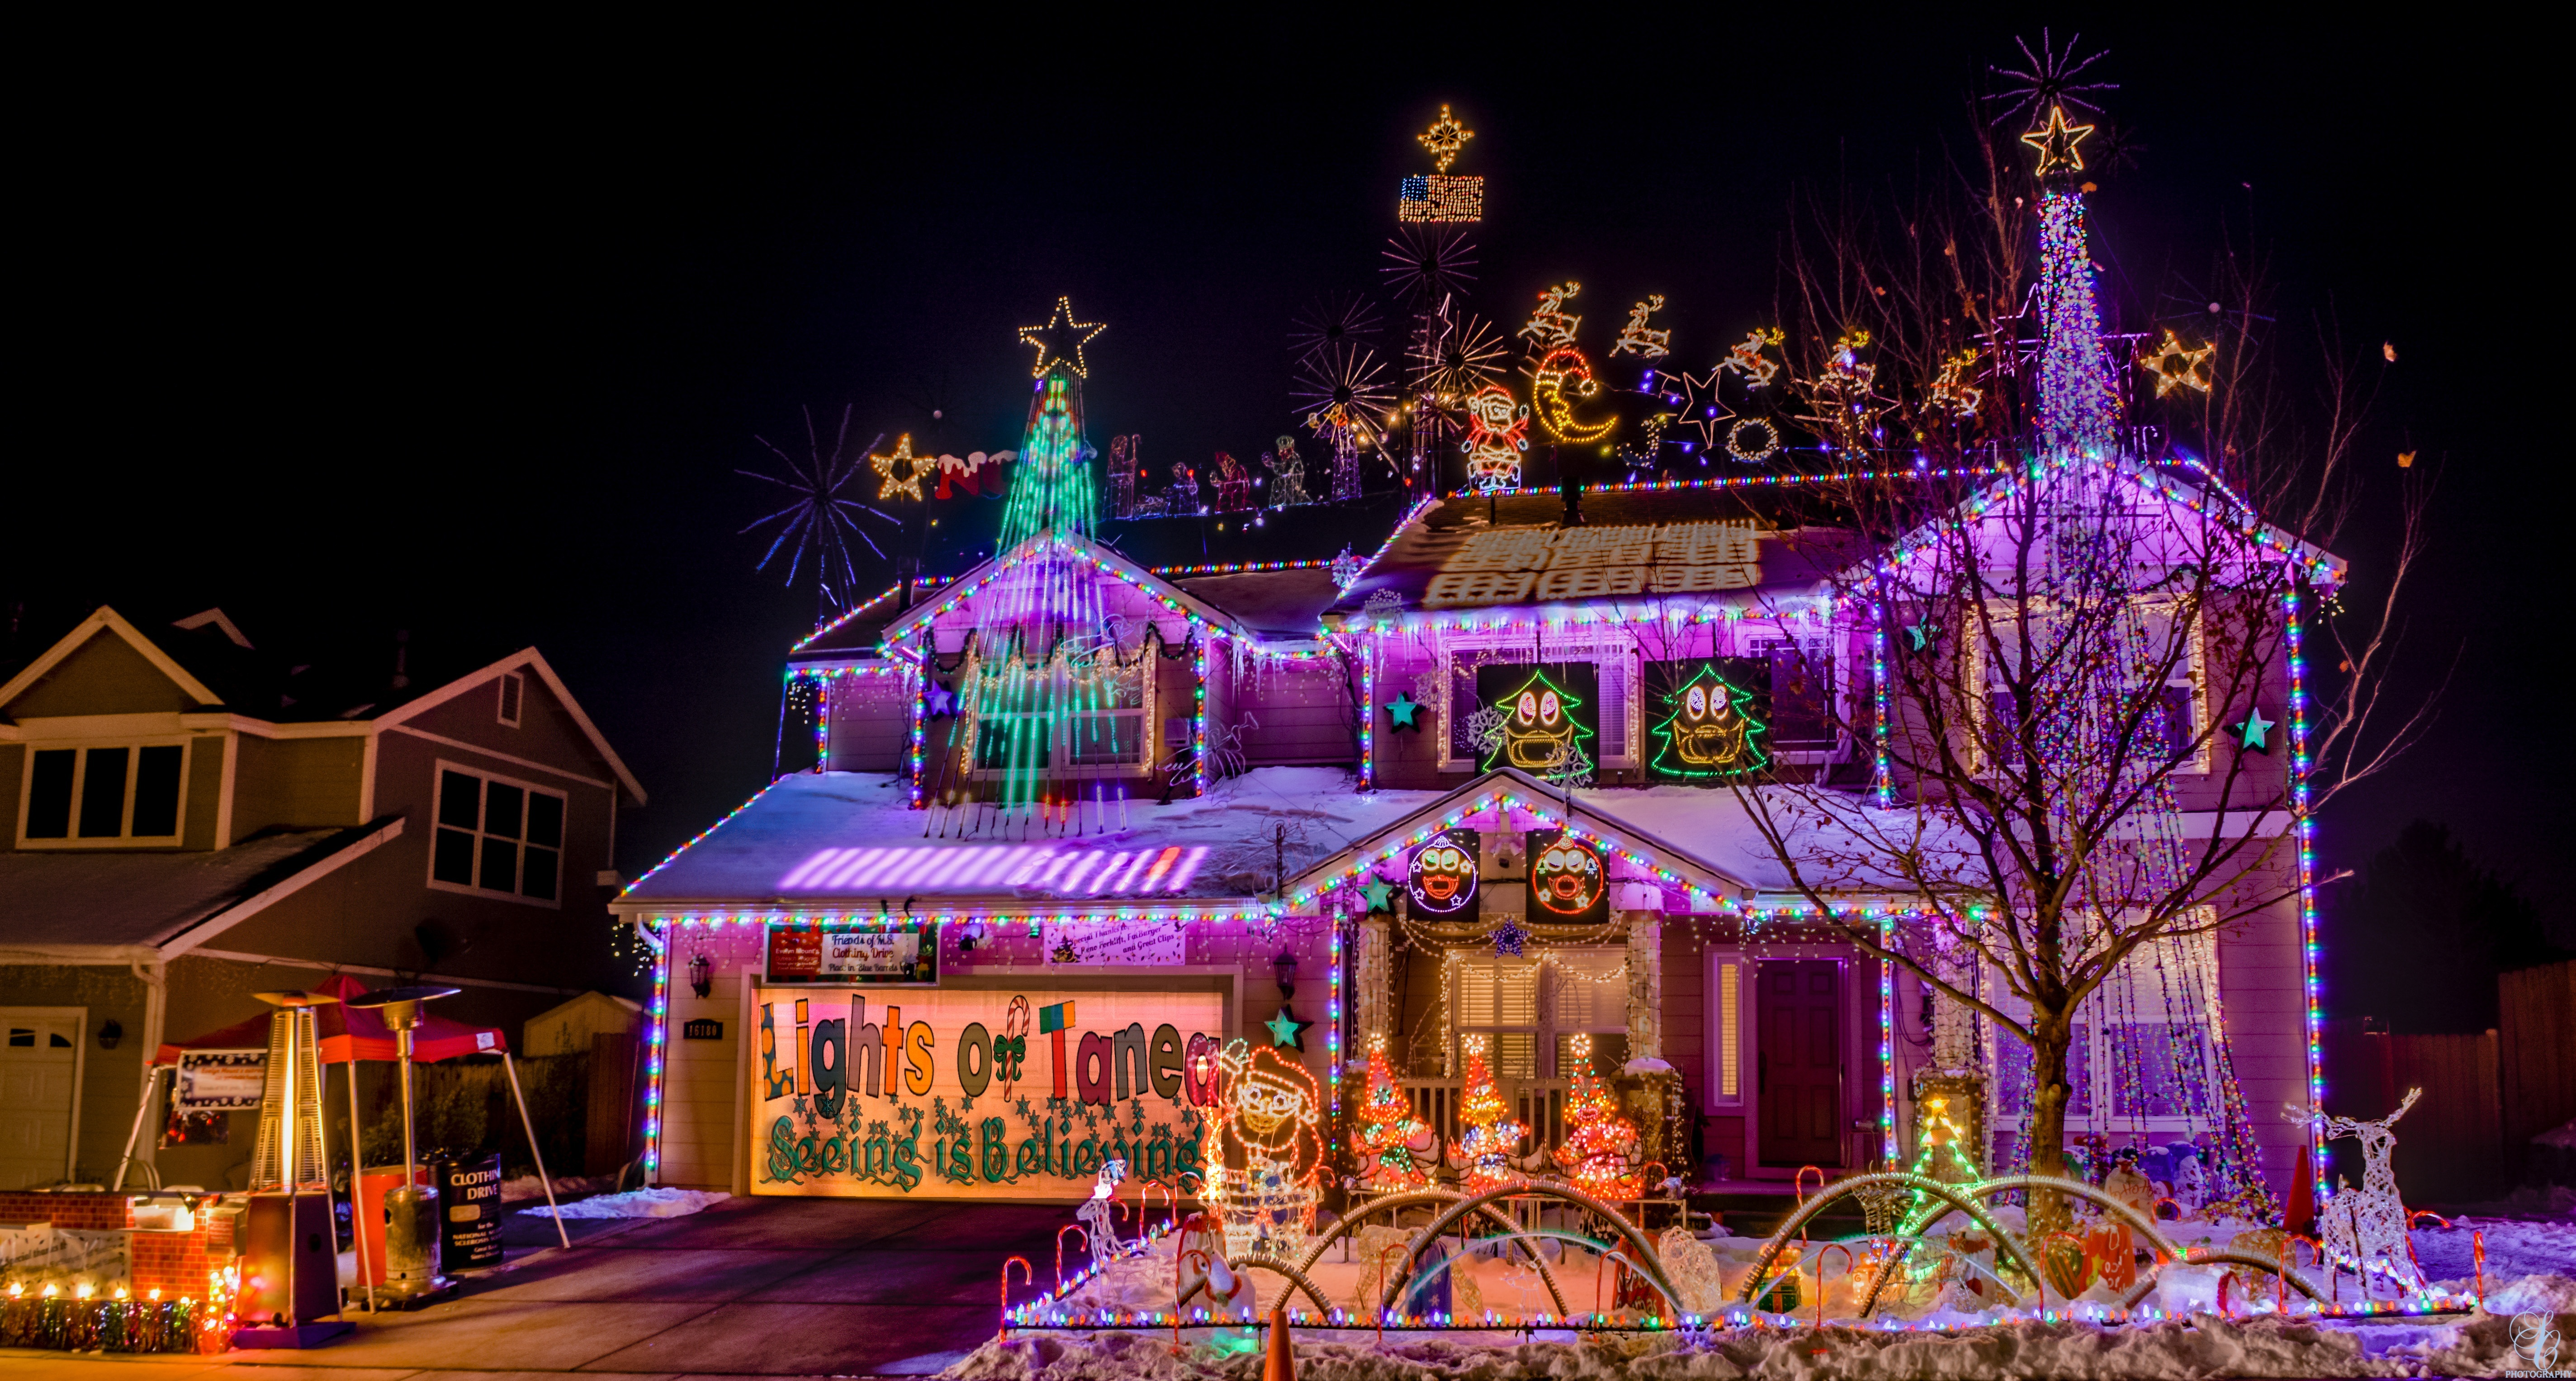 locals are glowing with holiday spirit